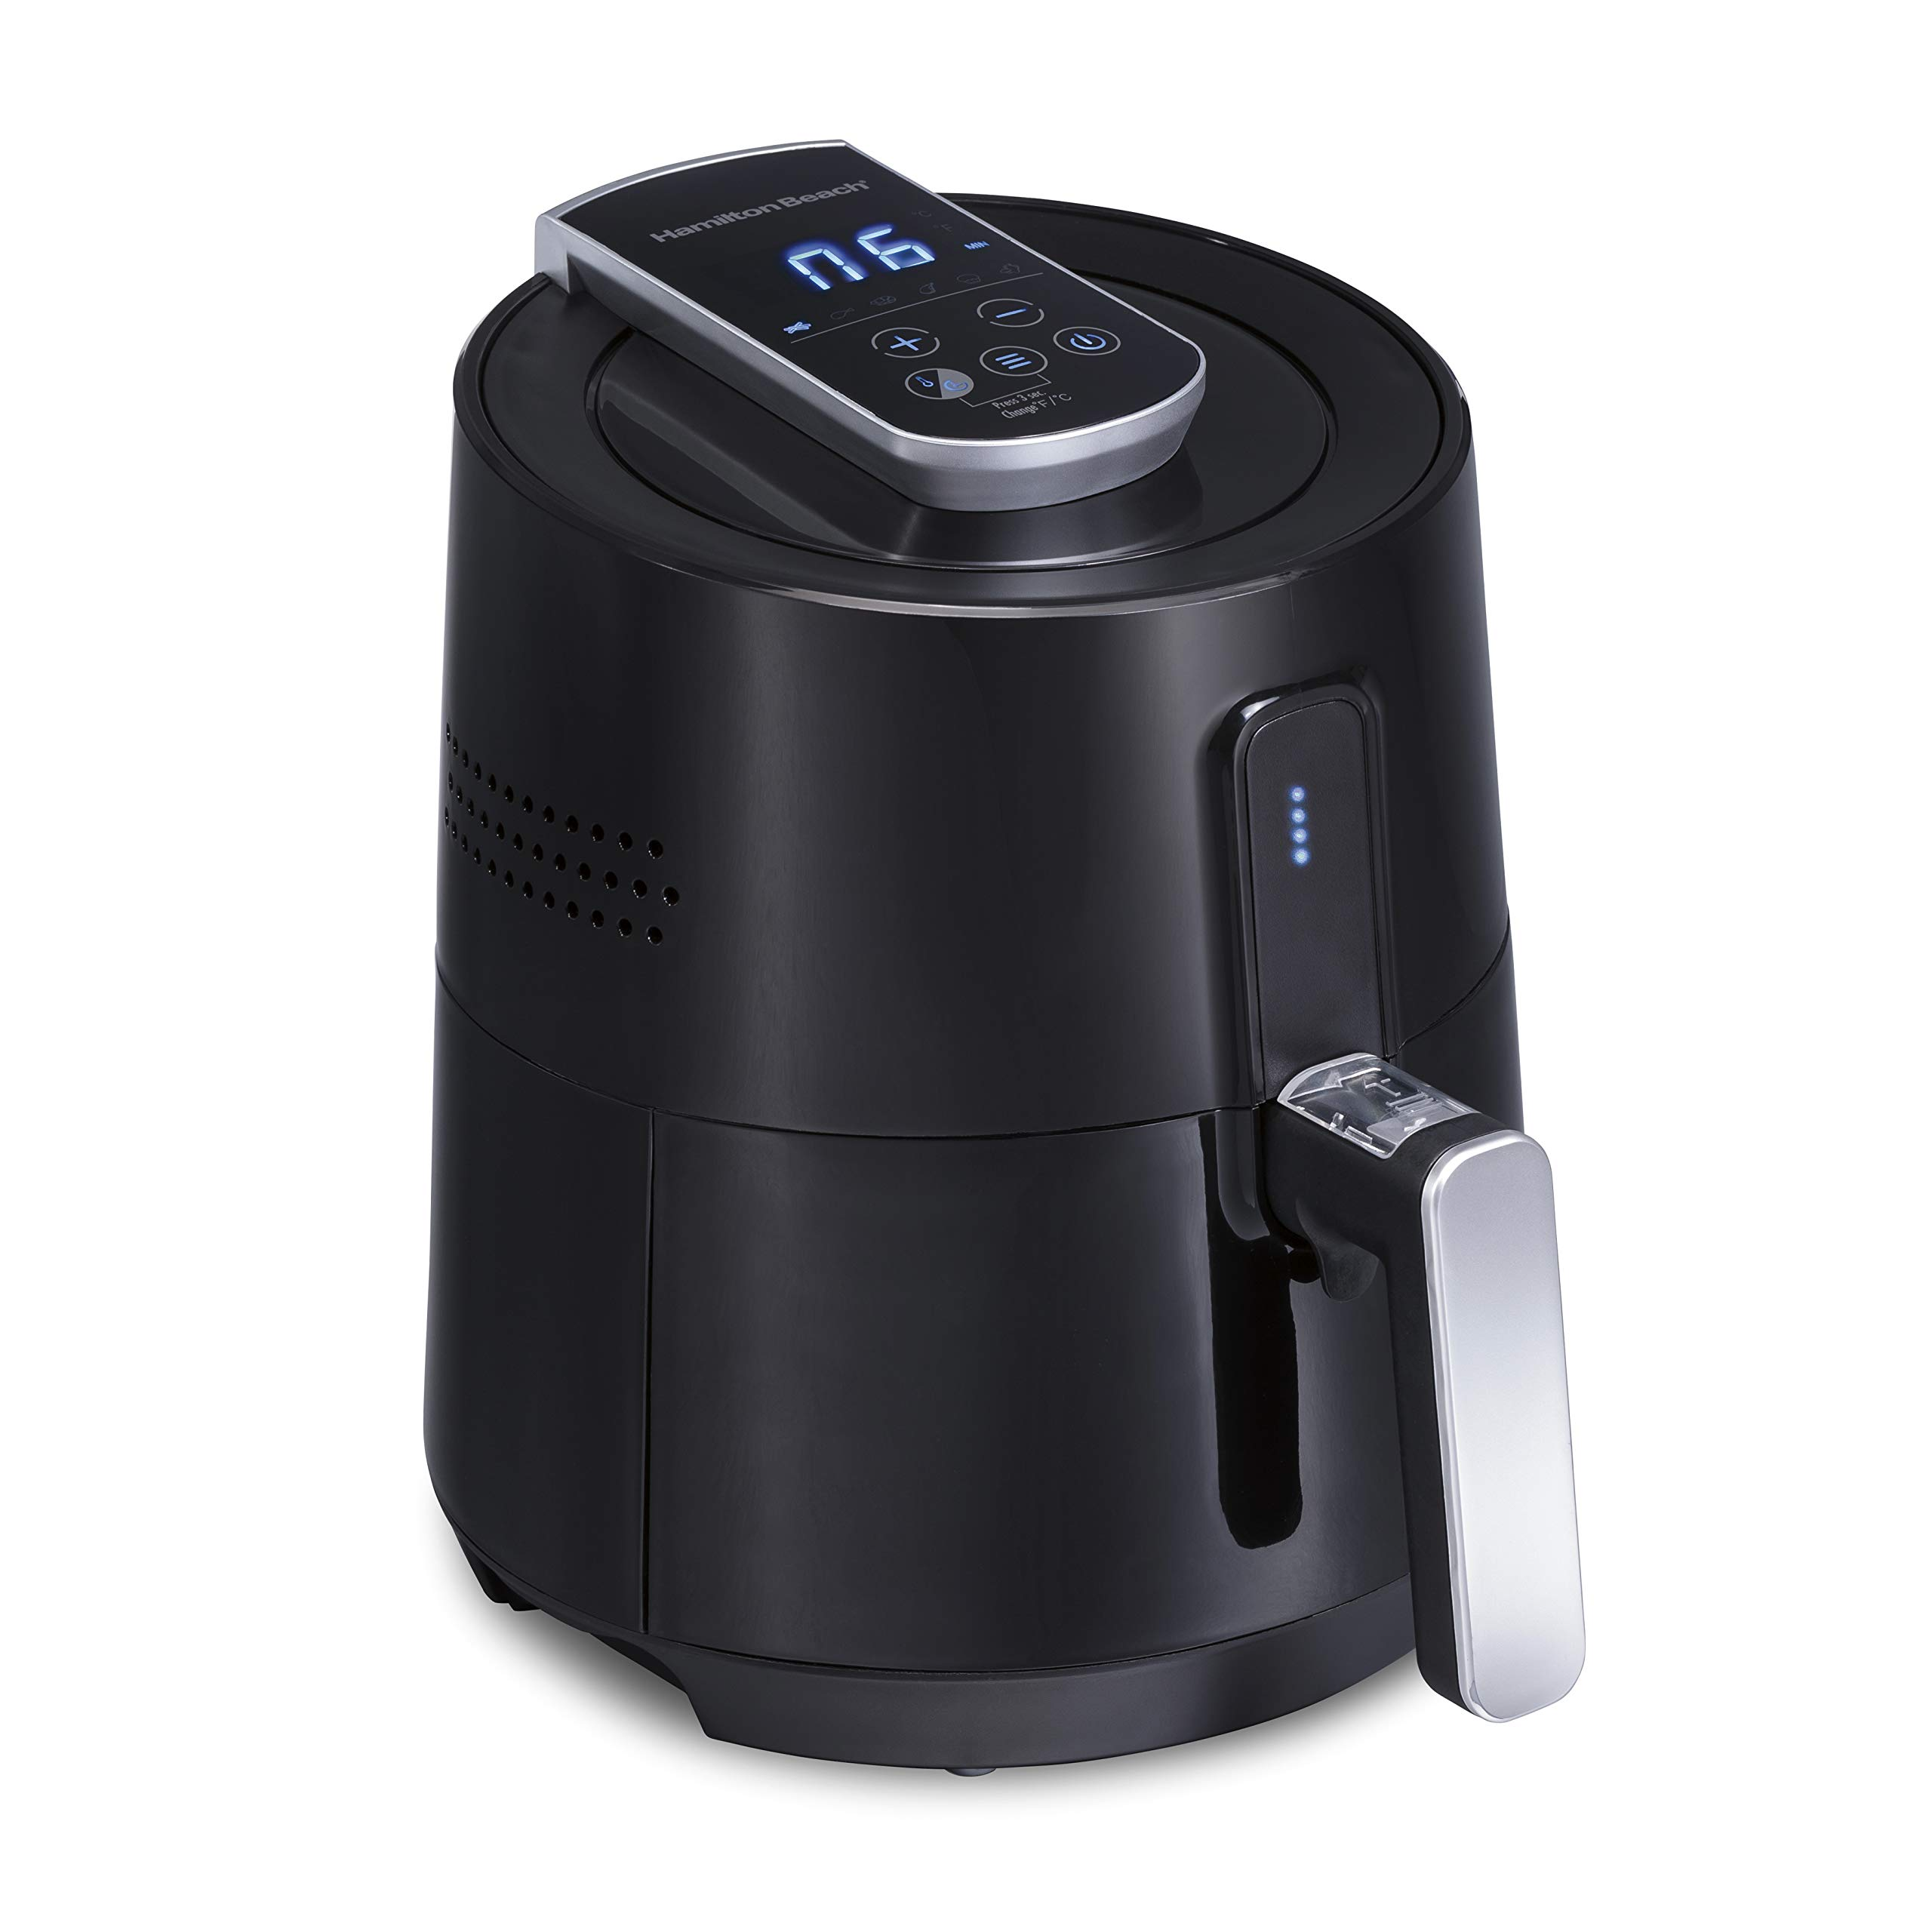 Hamilton Beach Air Fryer Oven Digital and Programmable, Nonstick (35050), 2.5 Liters, Black